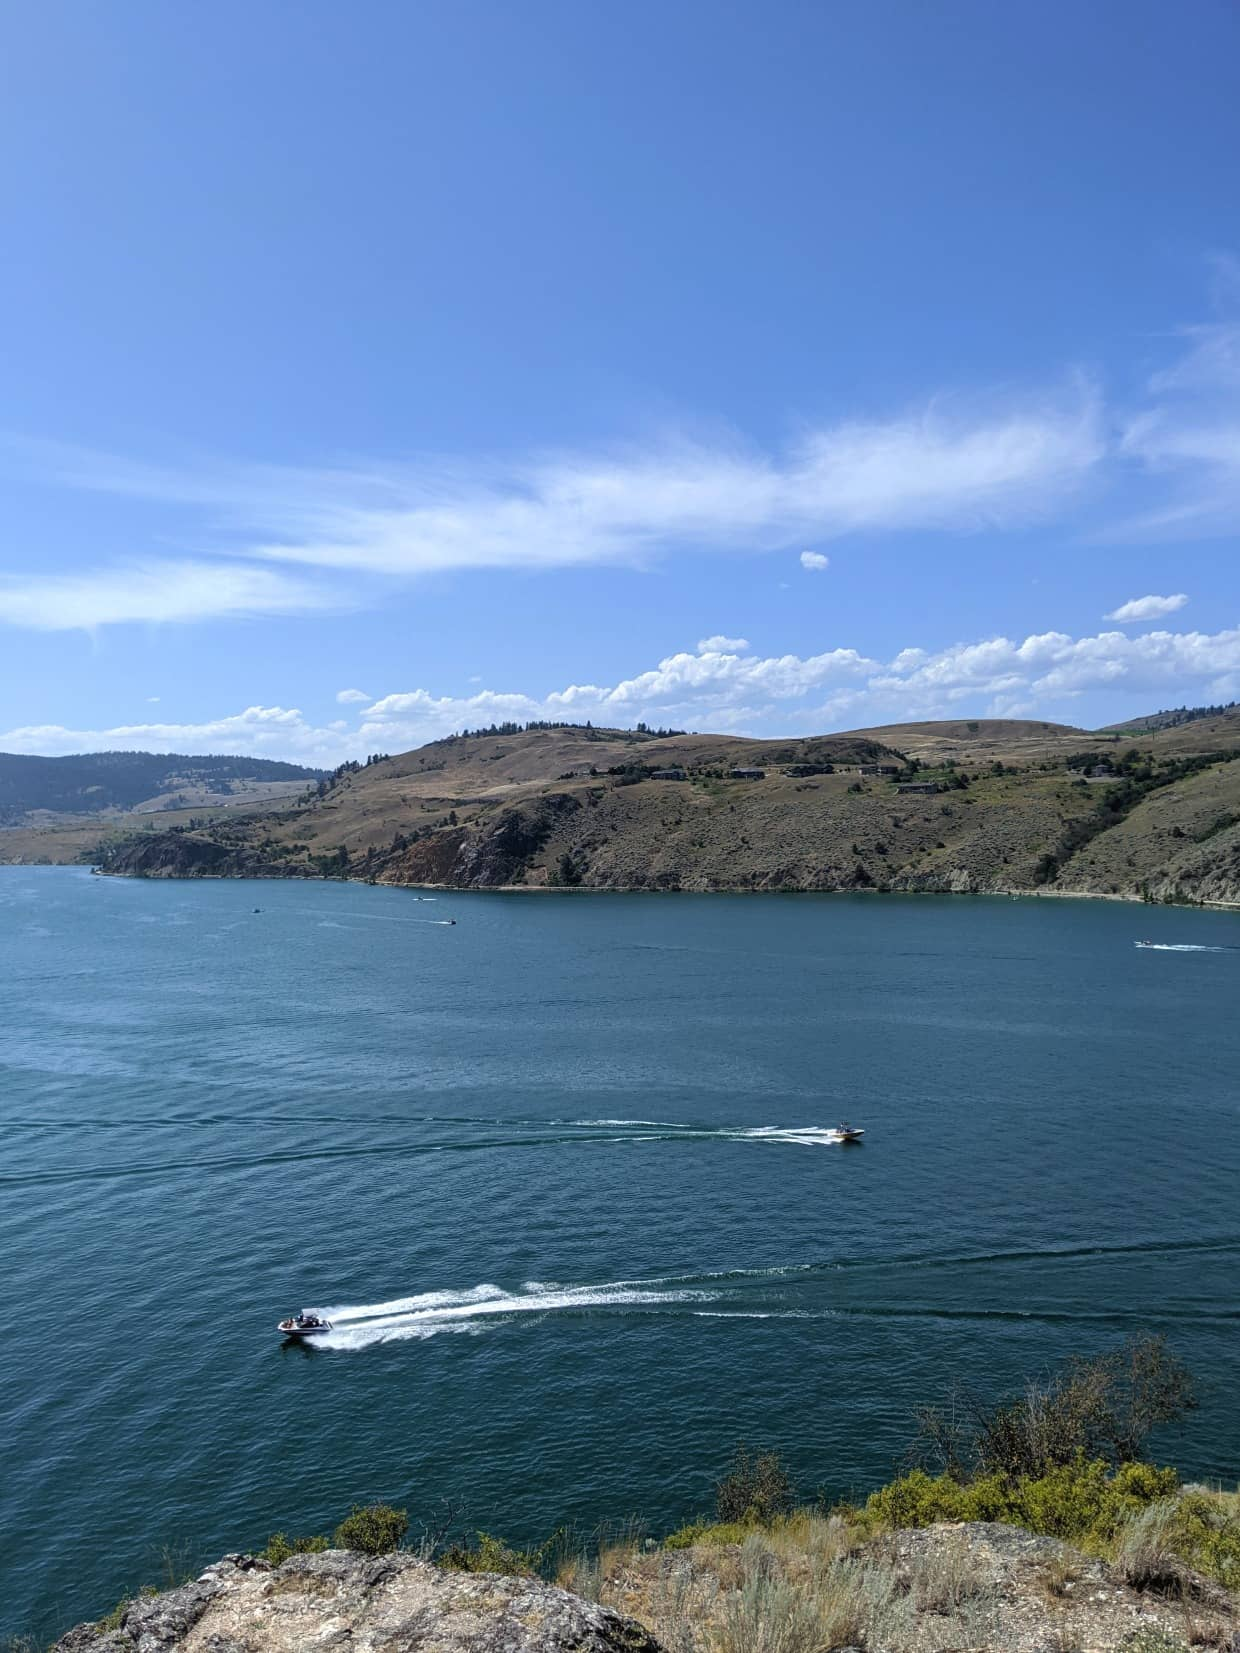 Lookout view of Kalamalka Lake with powerboats passing